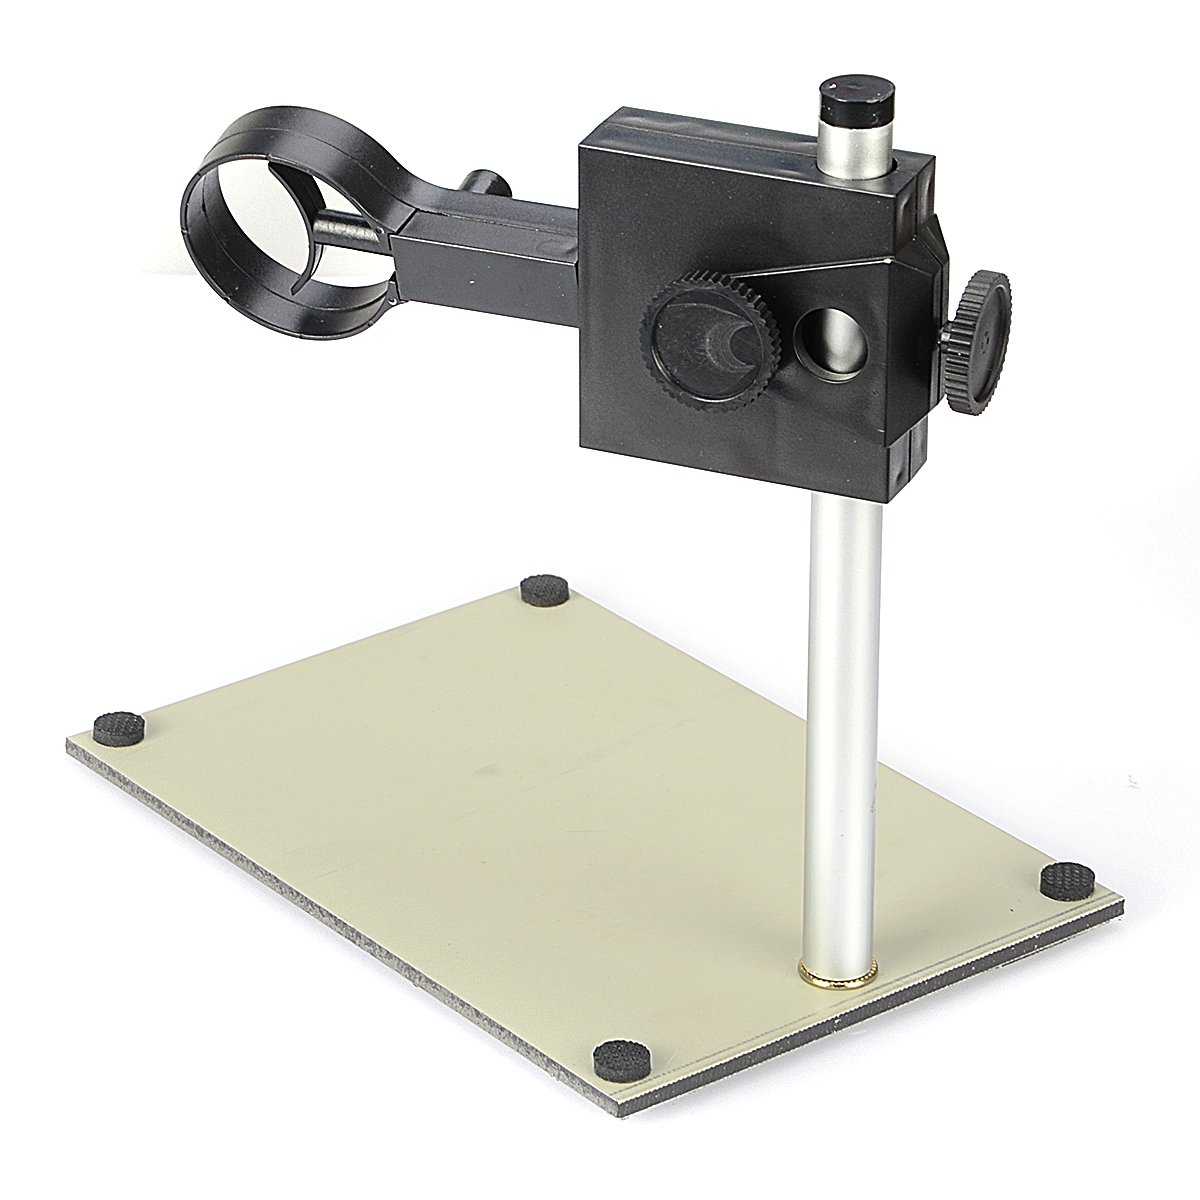 BephaMart Portable Adjustable Manual Focus Digital USB Microscope Holder Stand Support Adjusted Up and Down